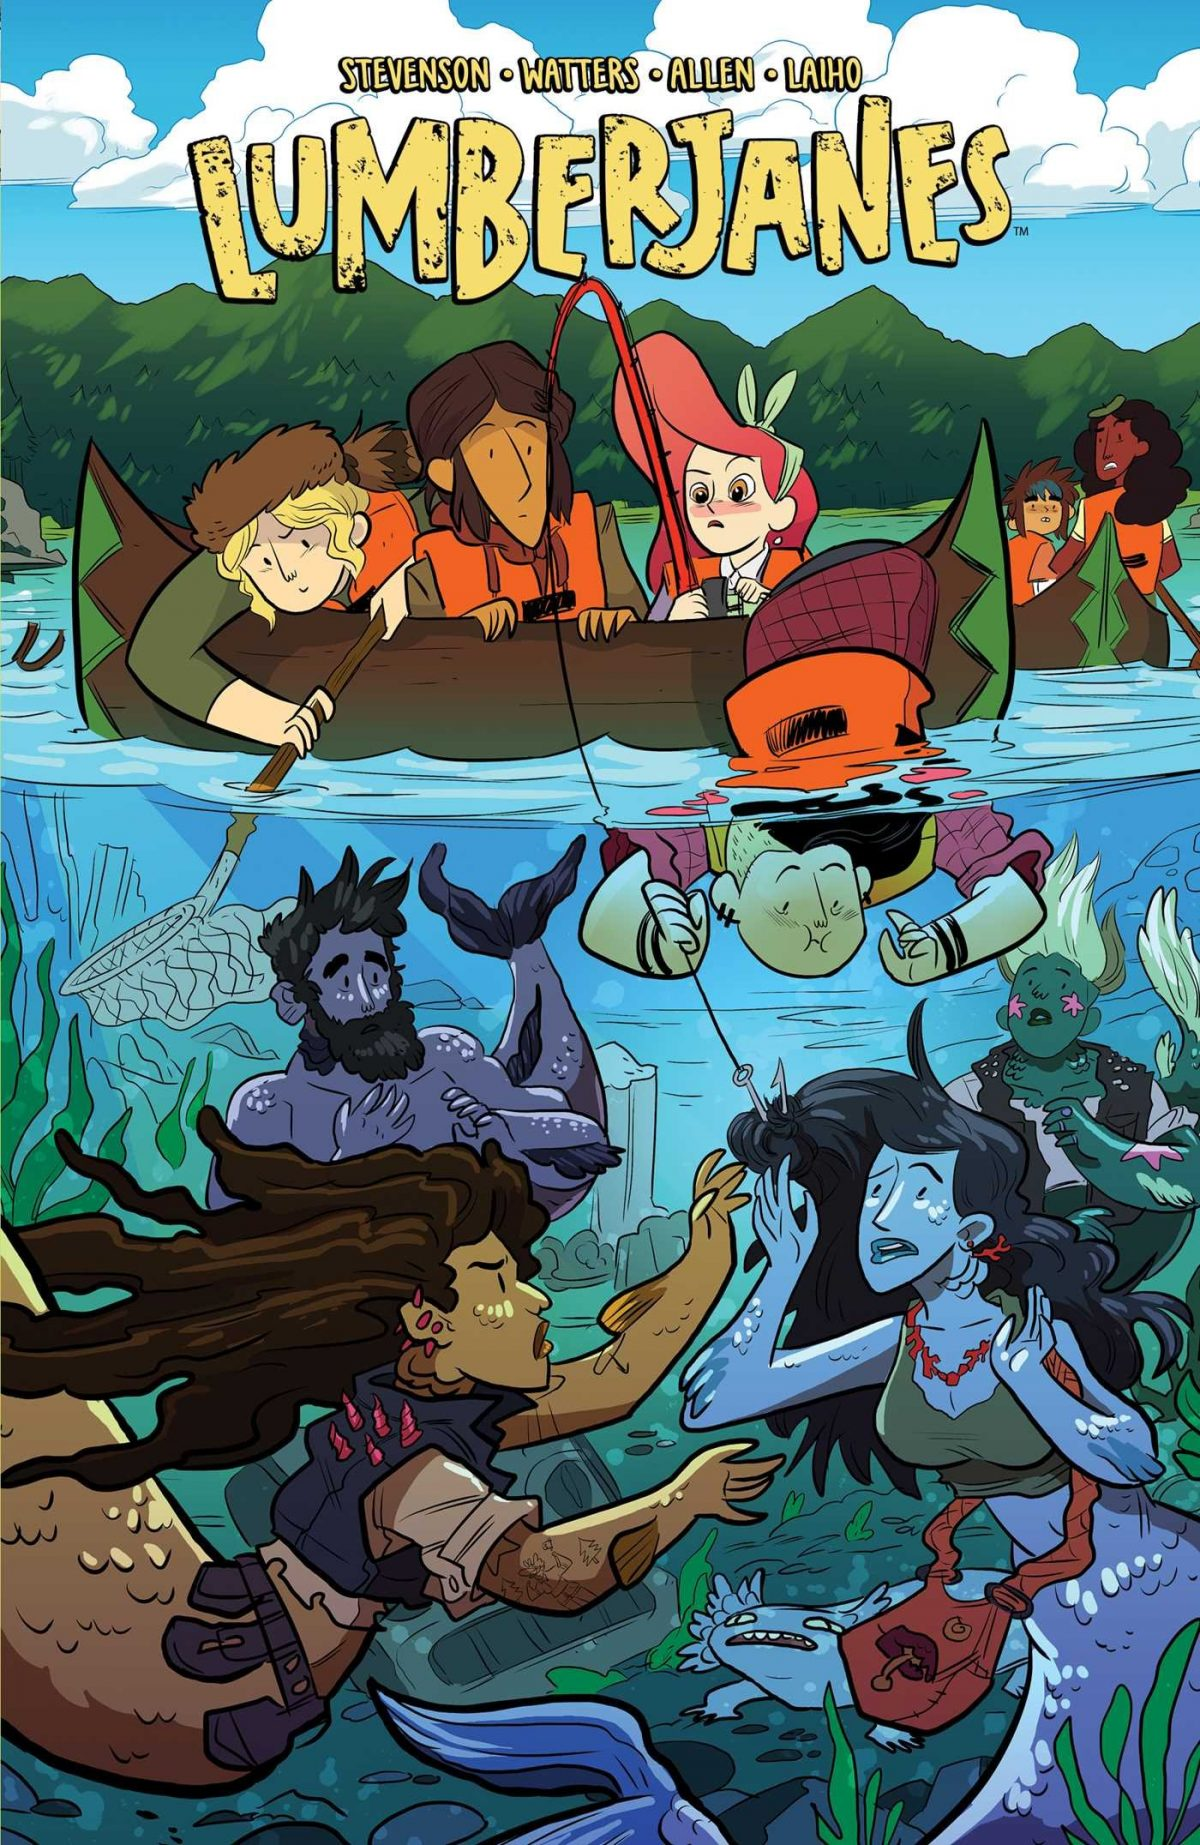 Five girls in two canoes on a river, on is peering into the water and see a variety of mer-people